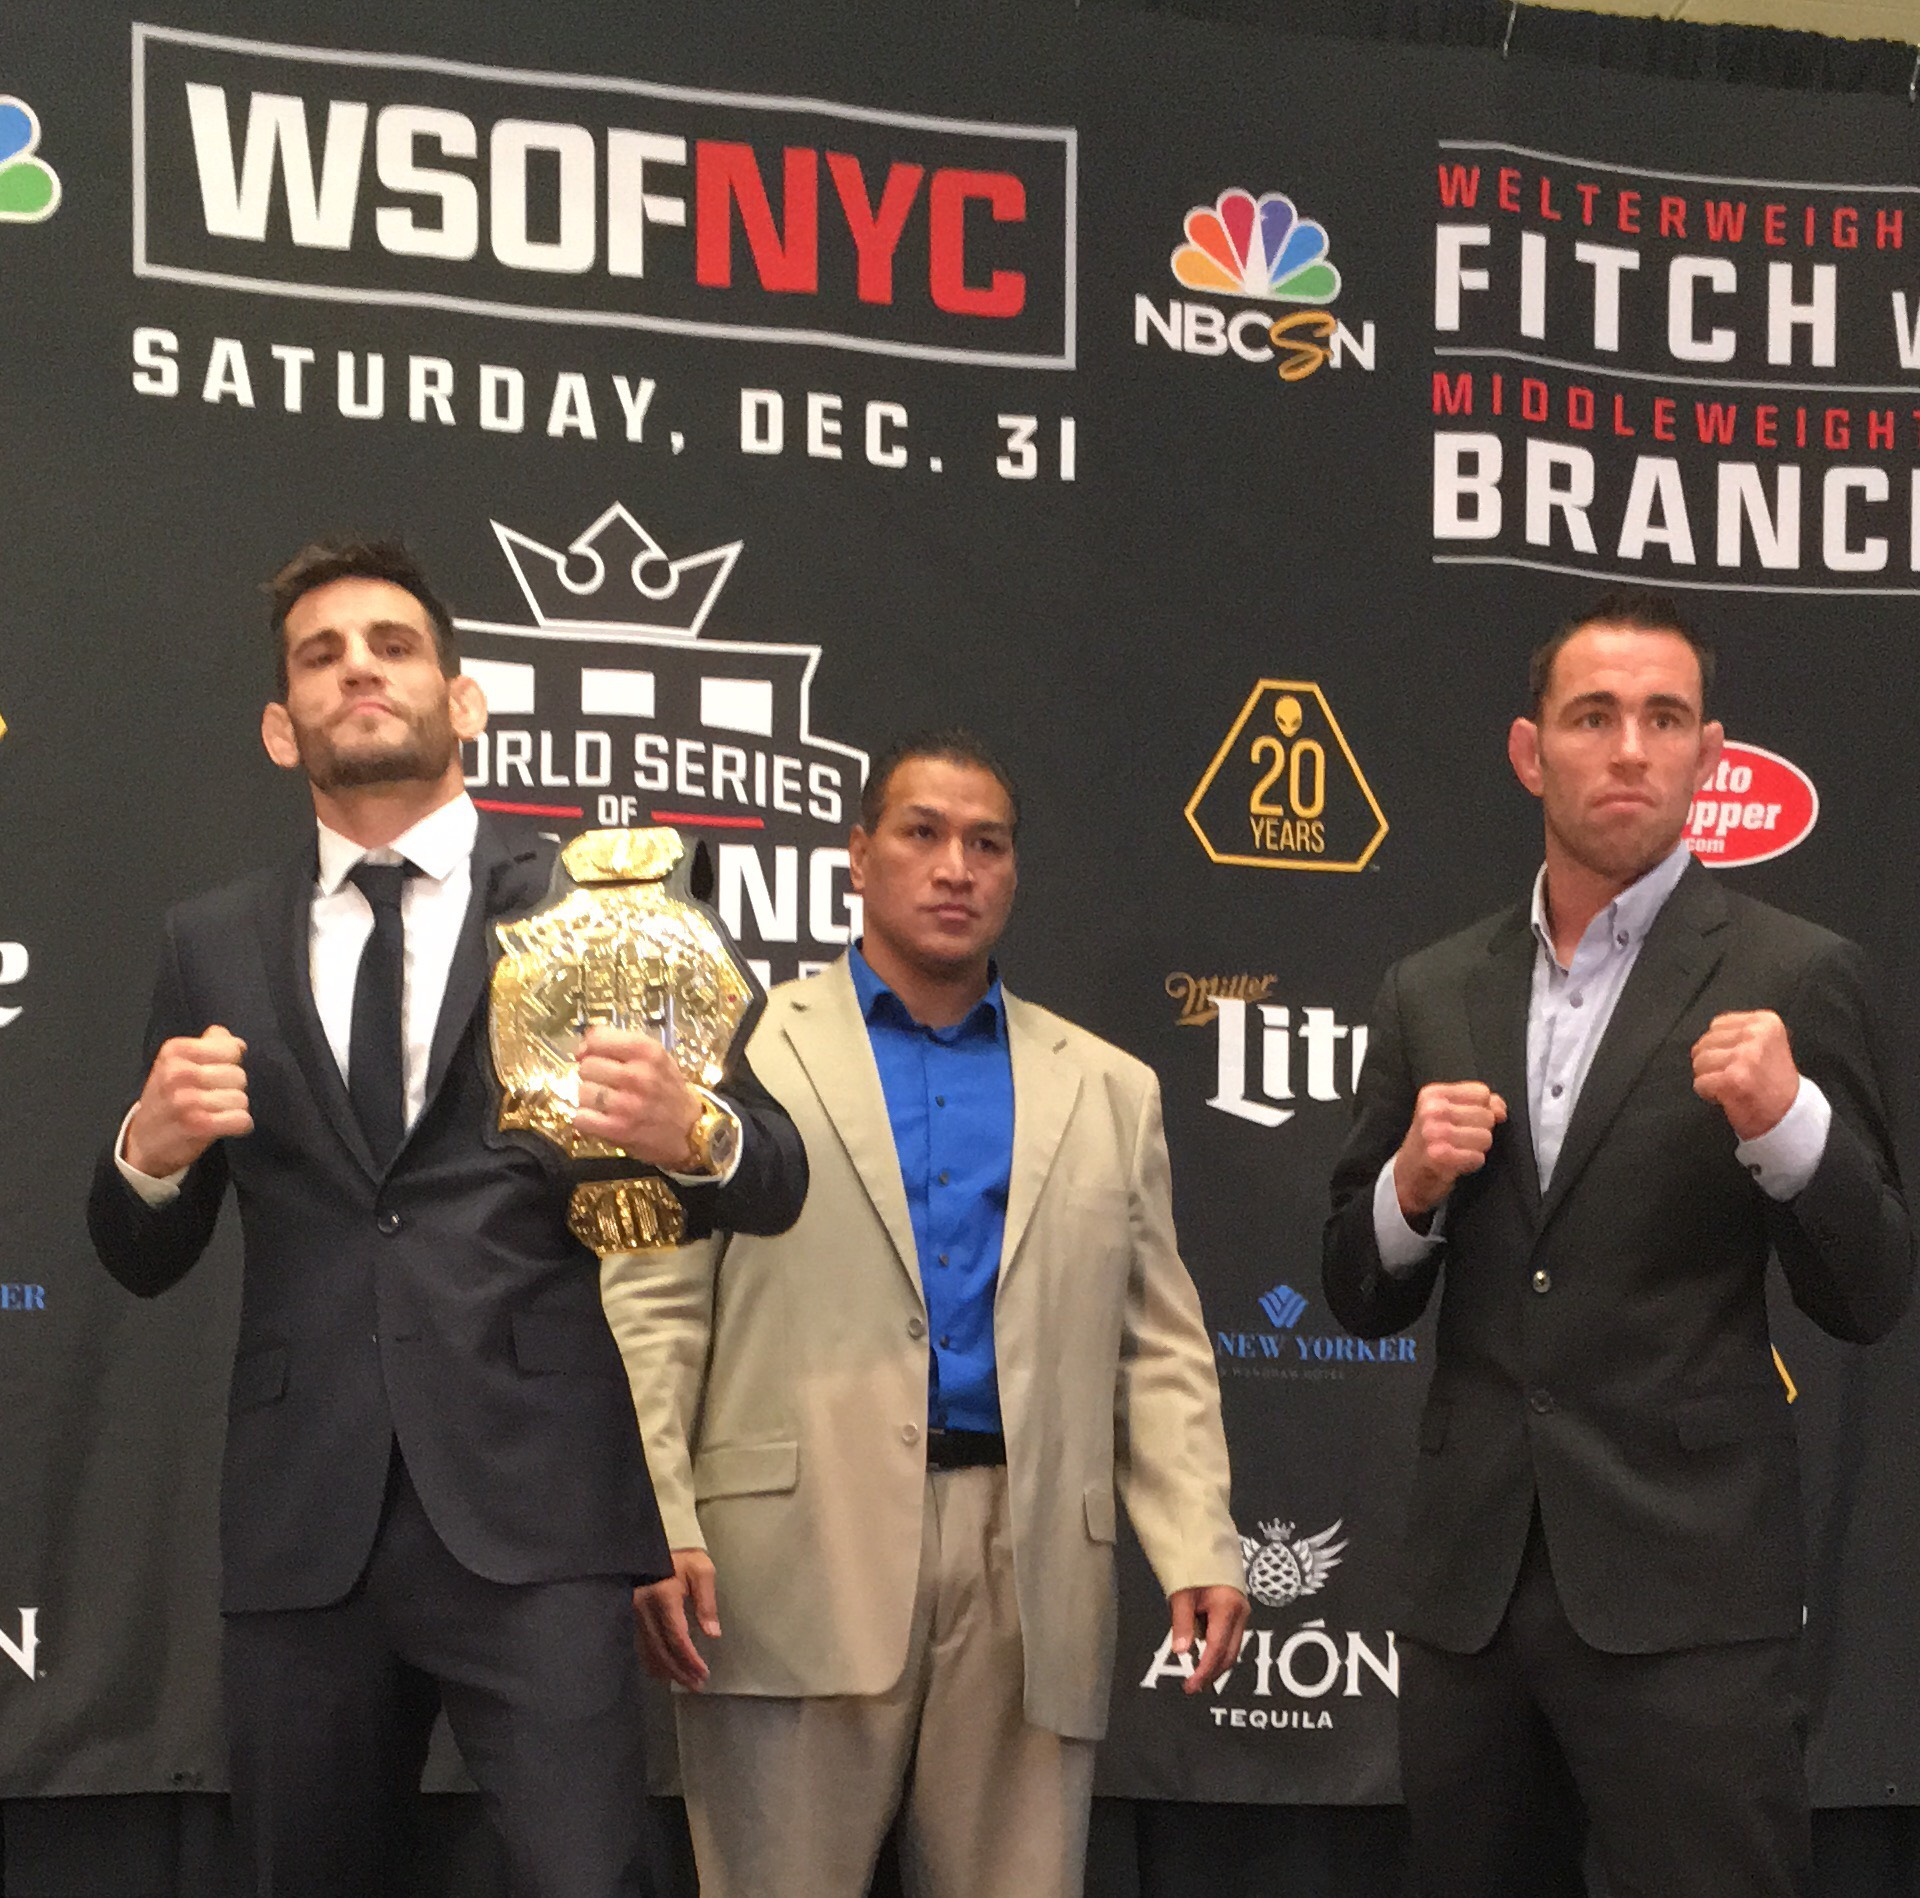 WSOF NYC Open Workout and Press Conference Highlights